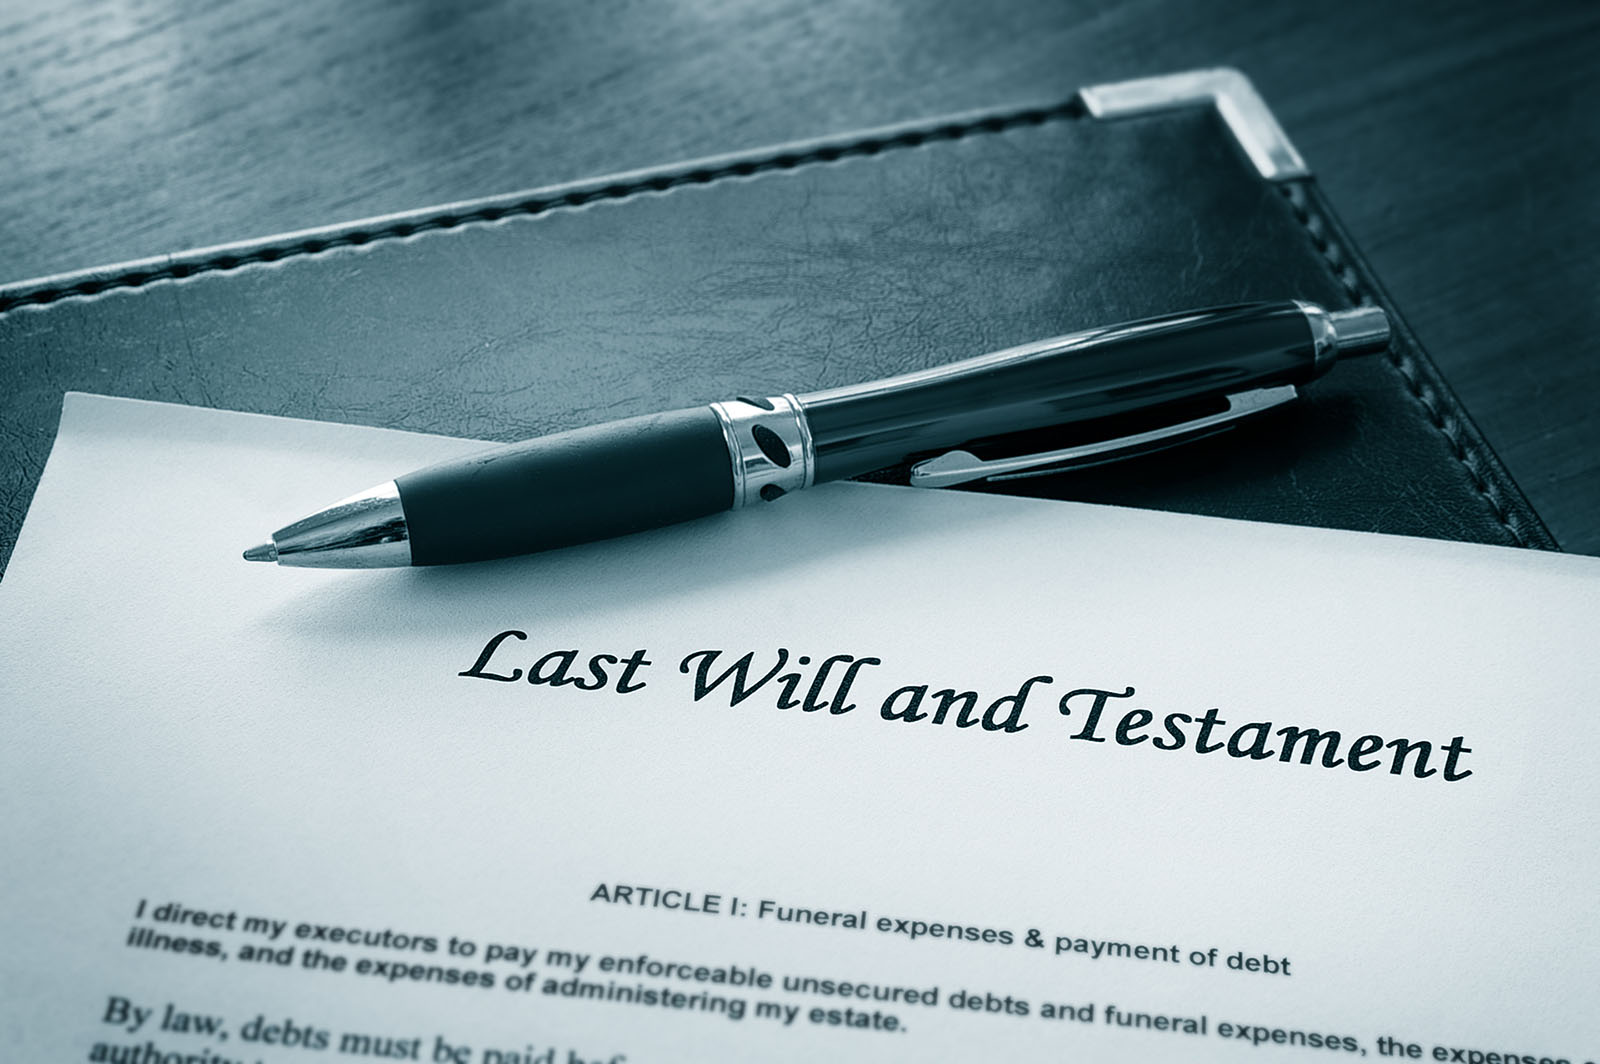 Last Will and Testament Attorney Frankston Victoria Australia